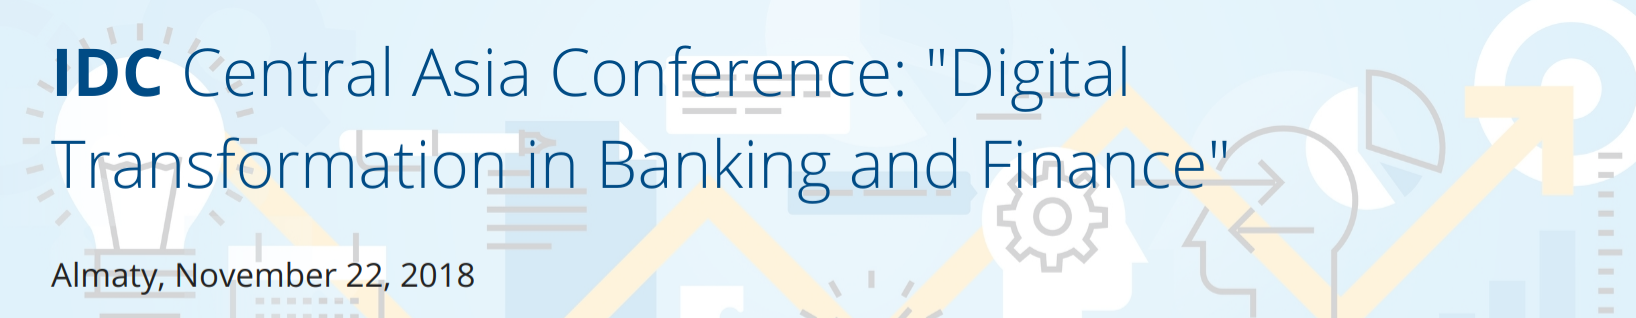 "IDC Central Asia Conference: ""Digital Transformation in Banking and Finance"""